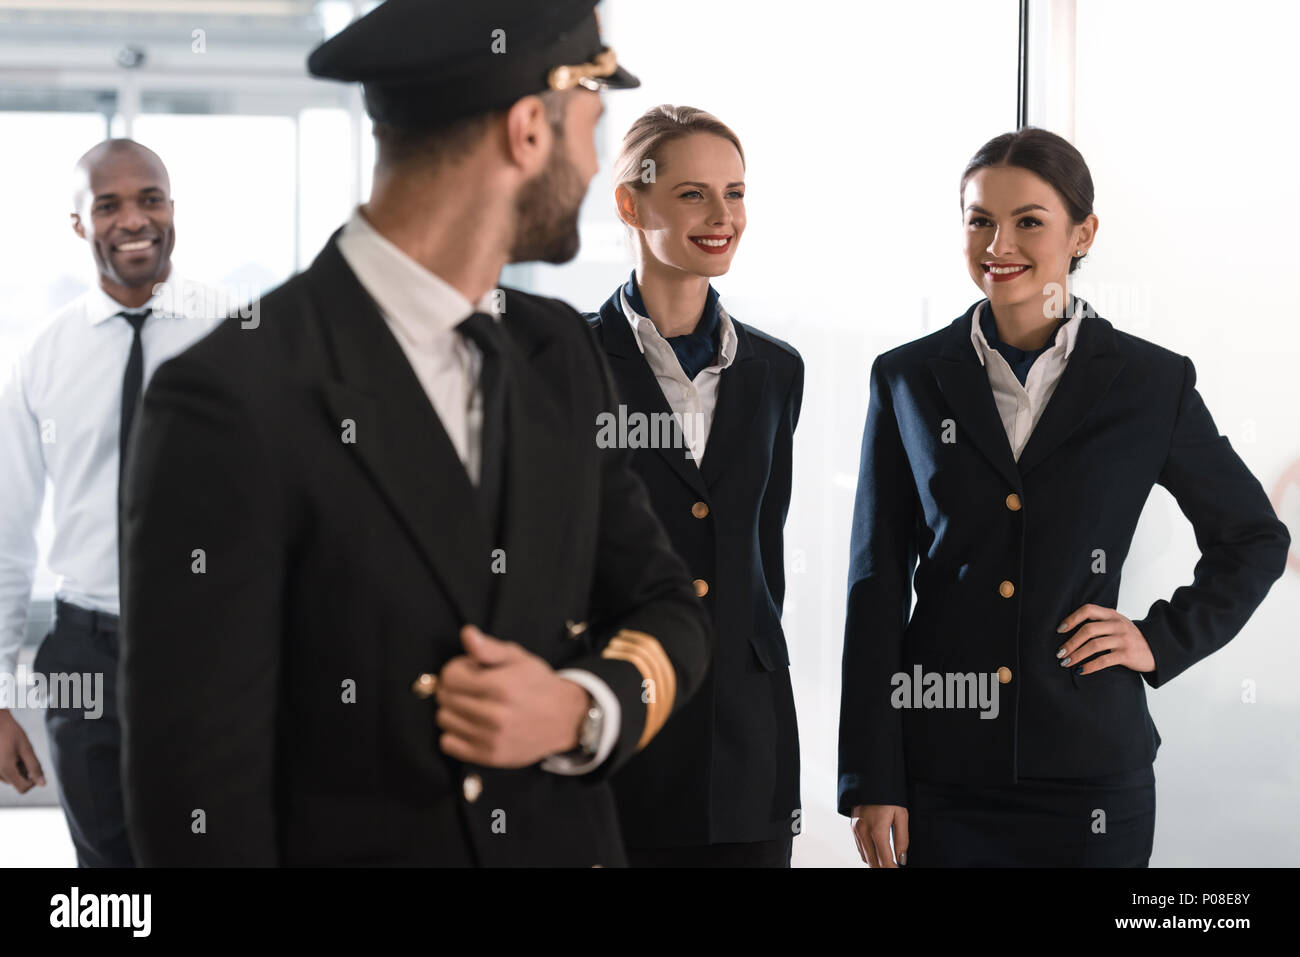 pilot and his team spending time in airport before flight - Stock Image